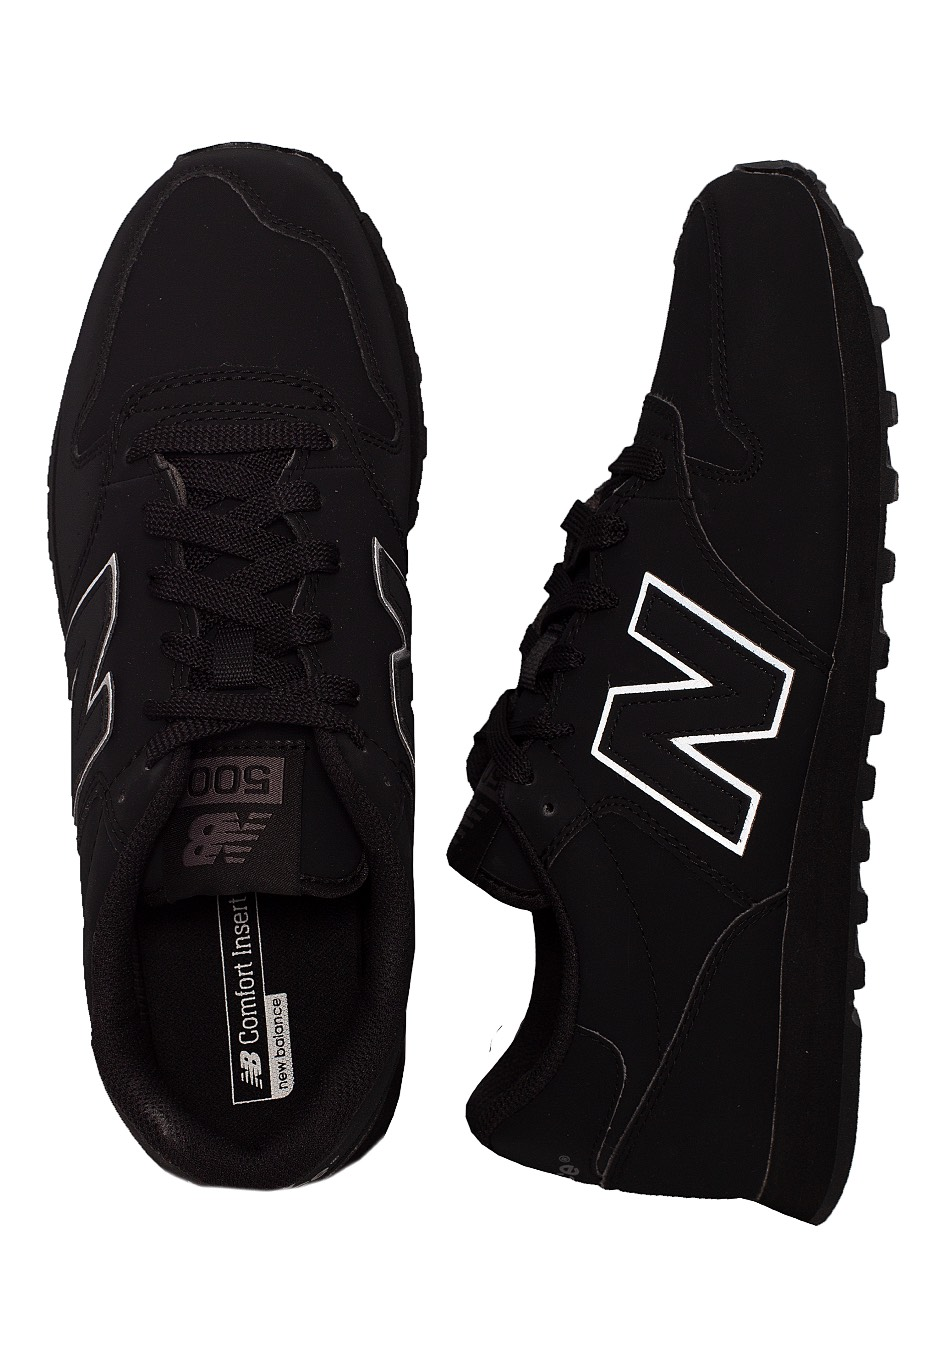 Apariencia Gorrión Complacer  New Balance - GM500 TRB Black - Shoes - Impericon.com US